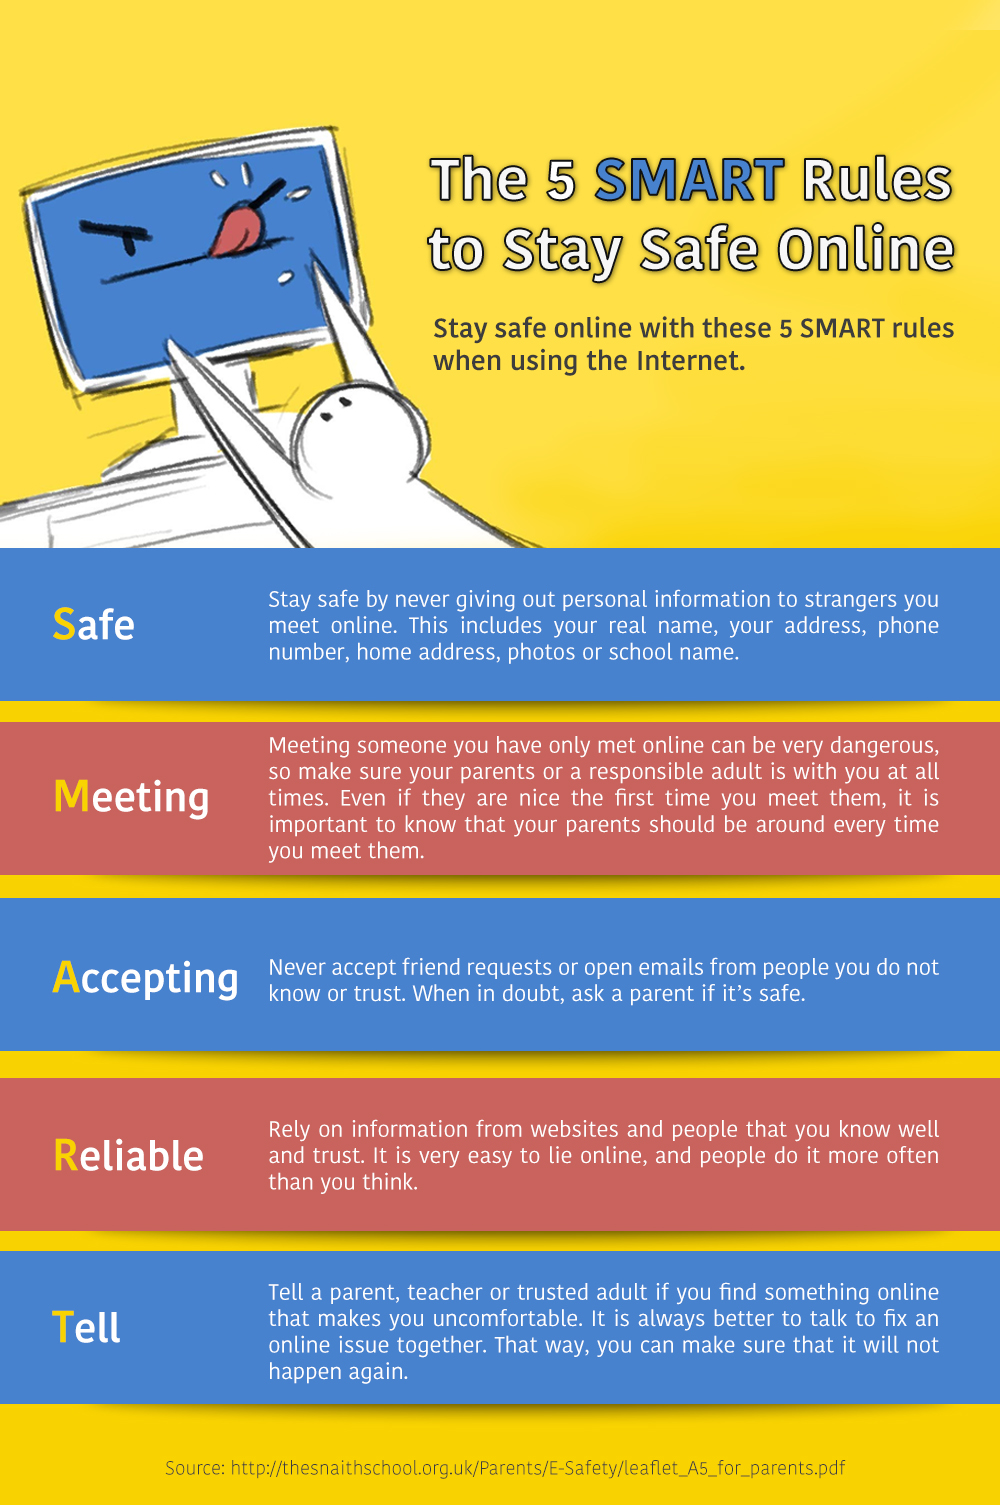 The 5 SMART Rules to Stay Safe Online